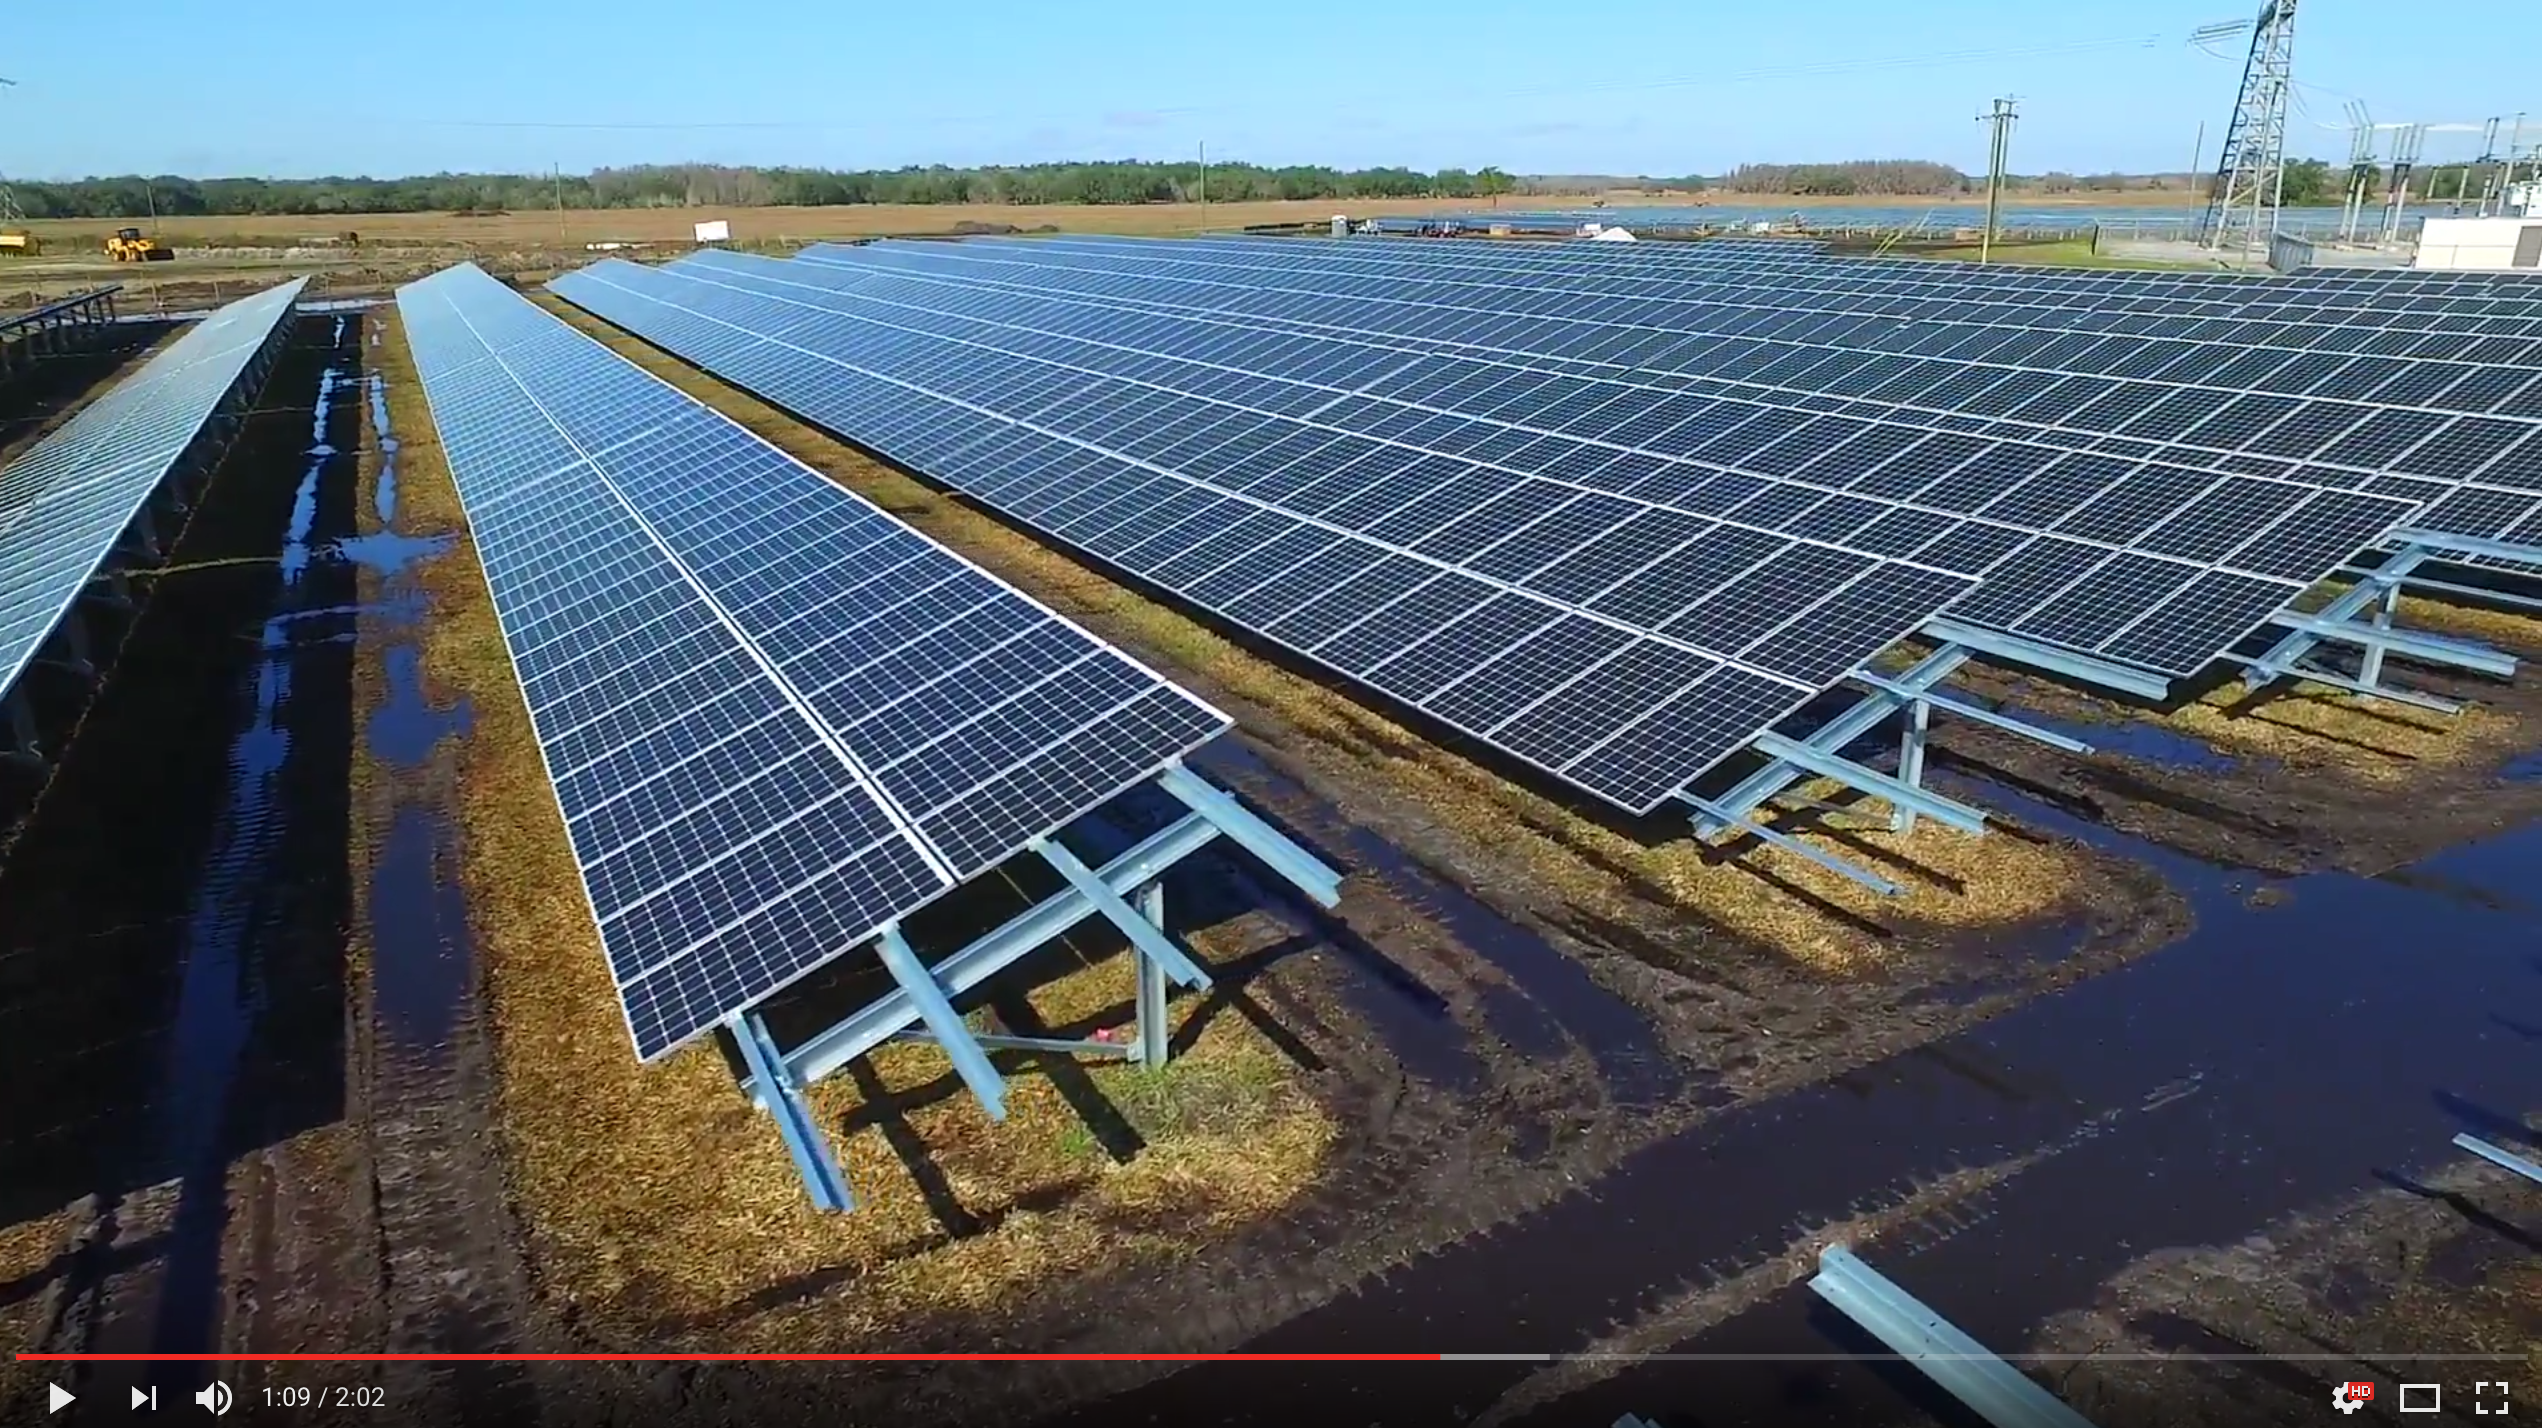 Florida Solar Power Plant Brings More Clean Energy To The